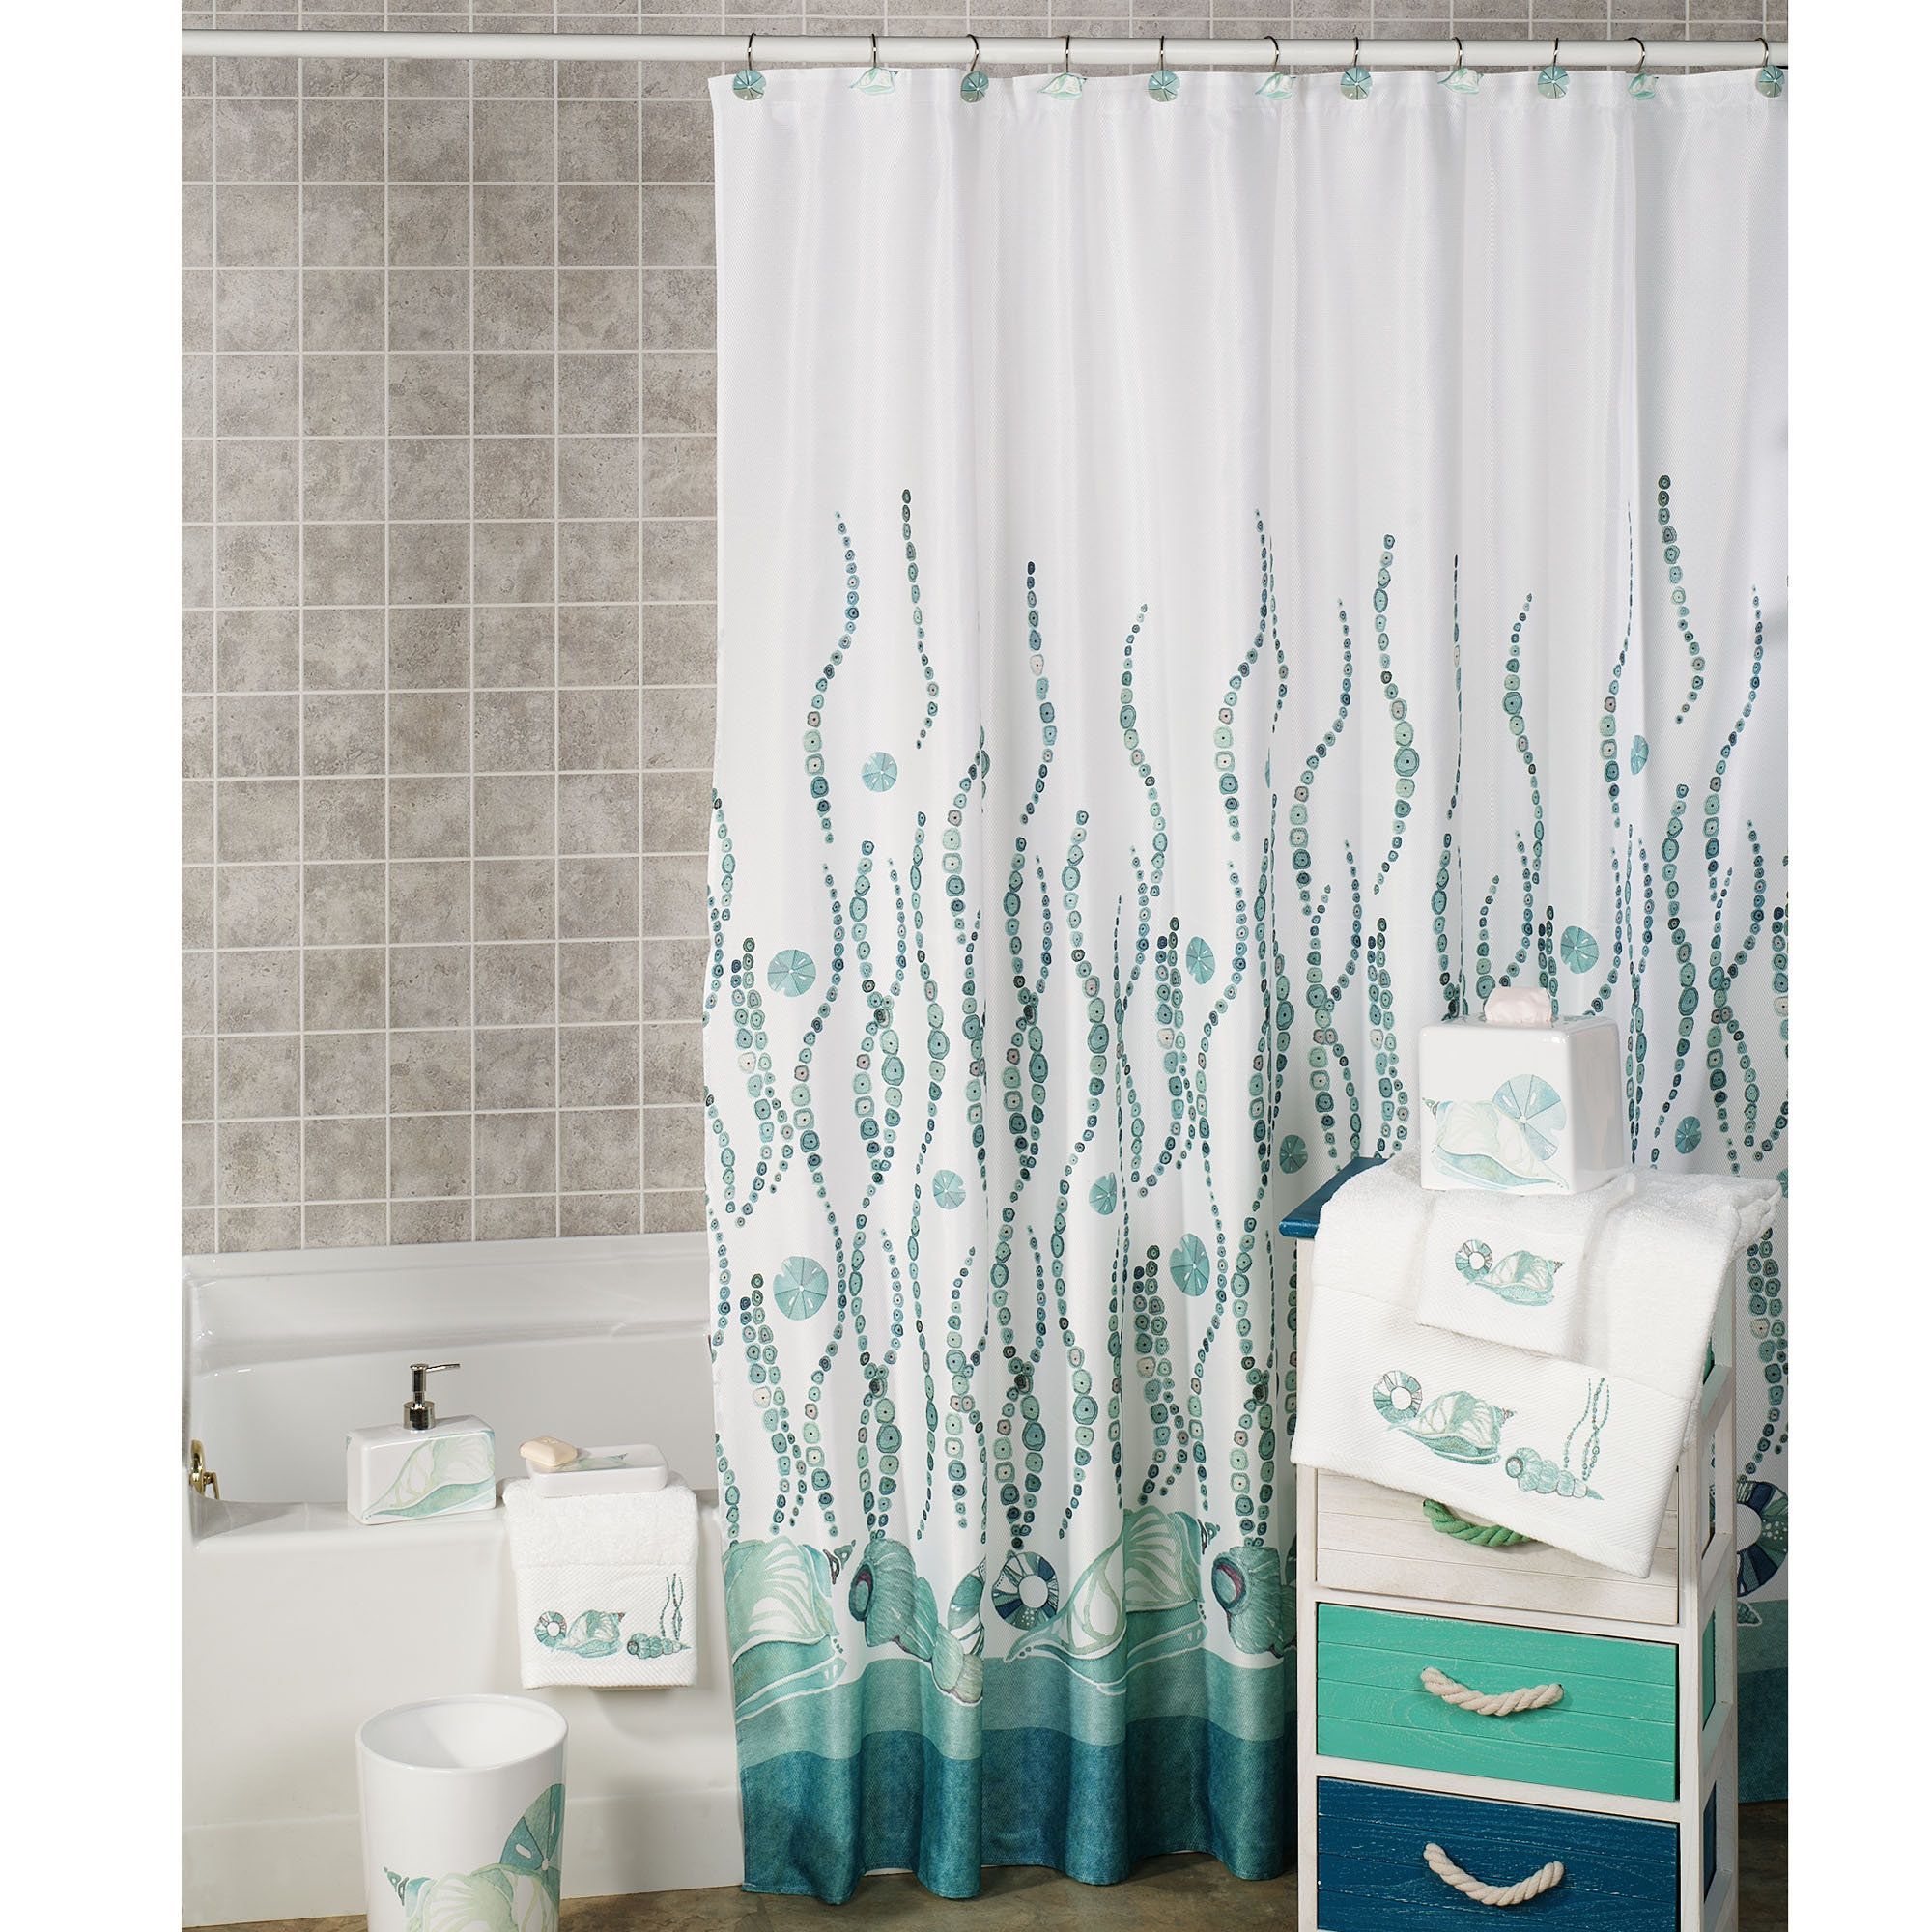 Kraken Shower Curtain Design And Character Http Www Appworship